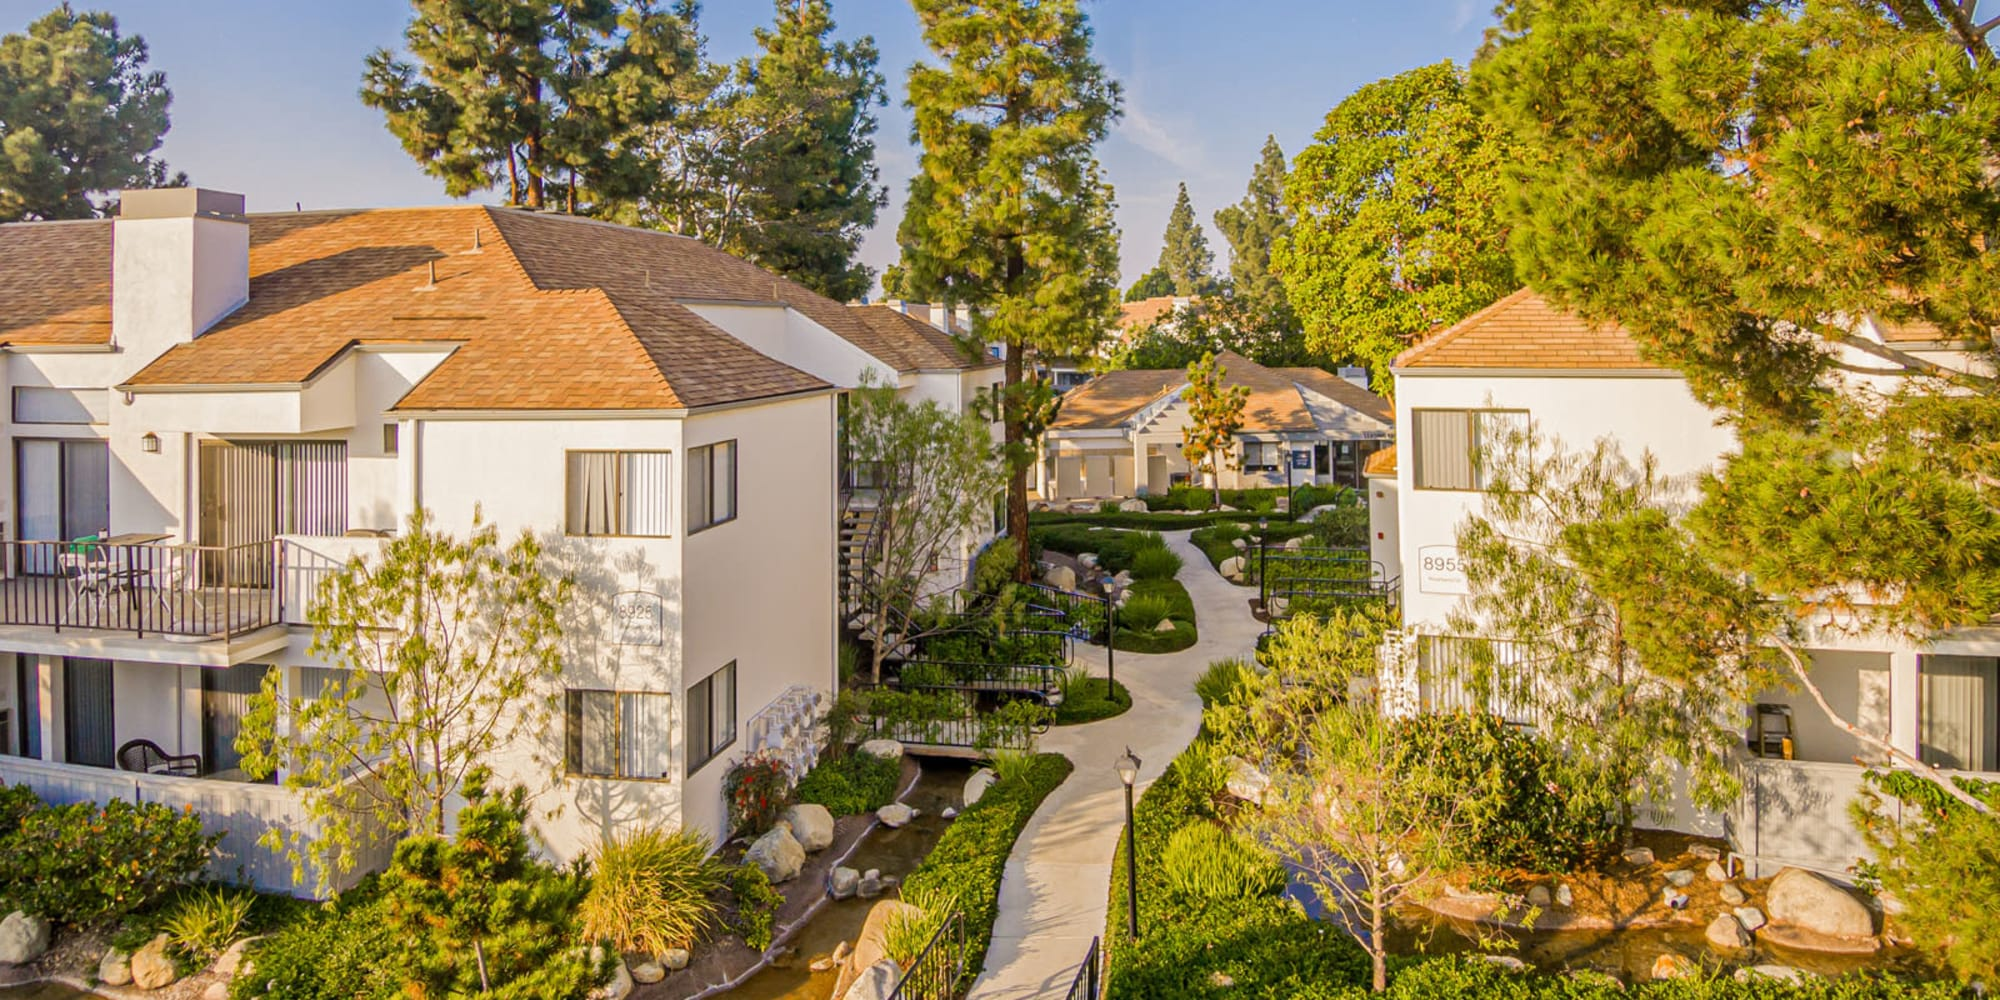 Beautifully maintained grounds and mature trees throughout our community at Sendero Huntington Beach in Huntington Beach, California